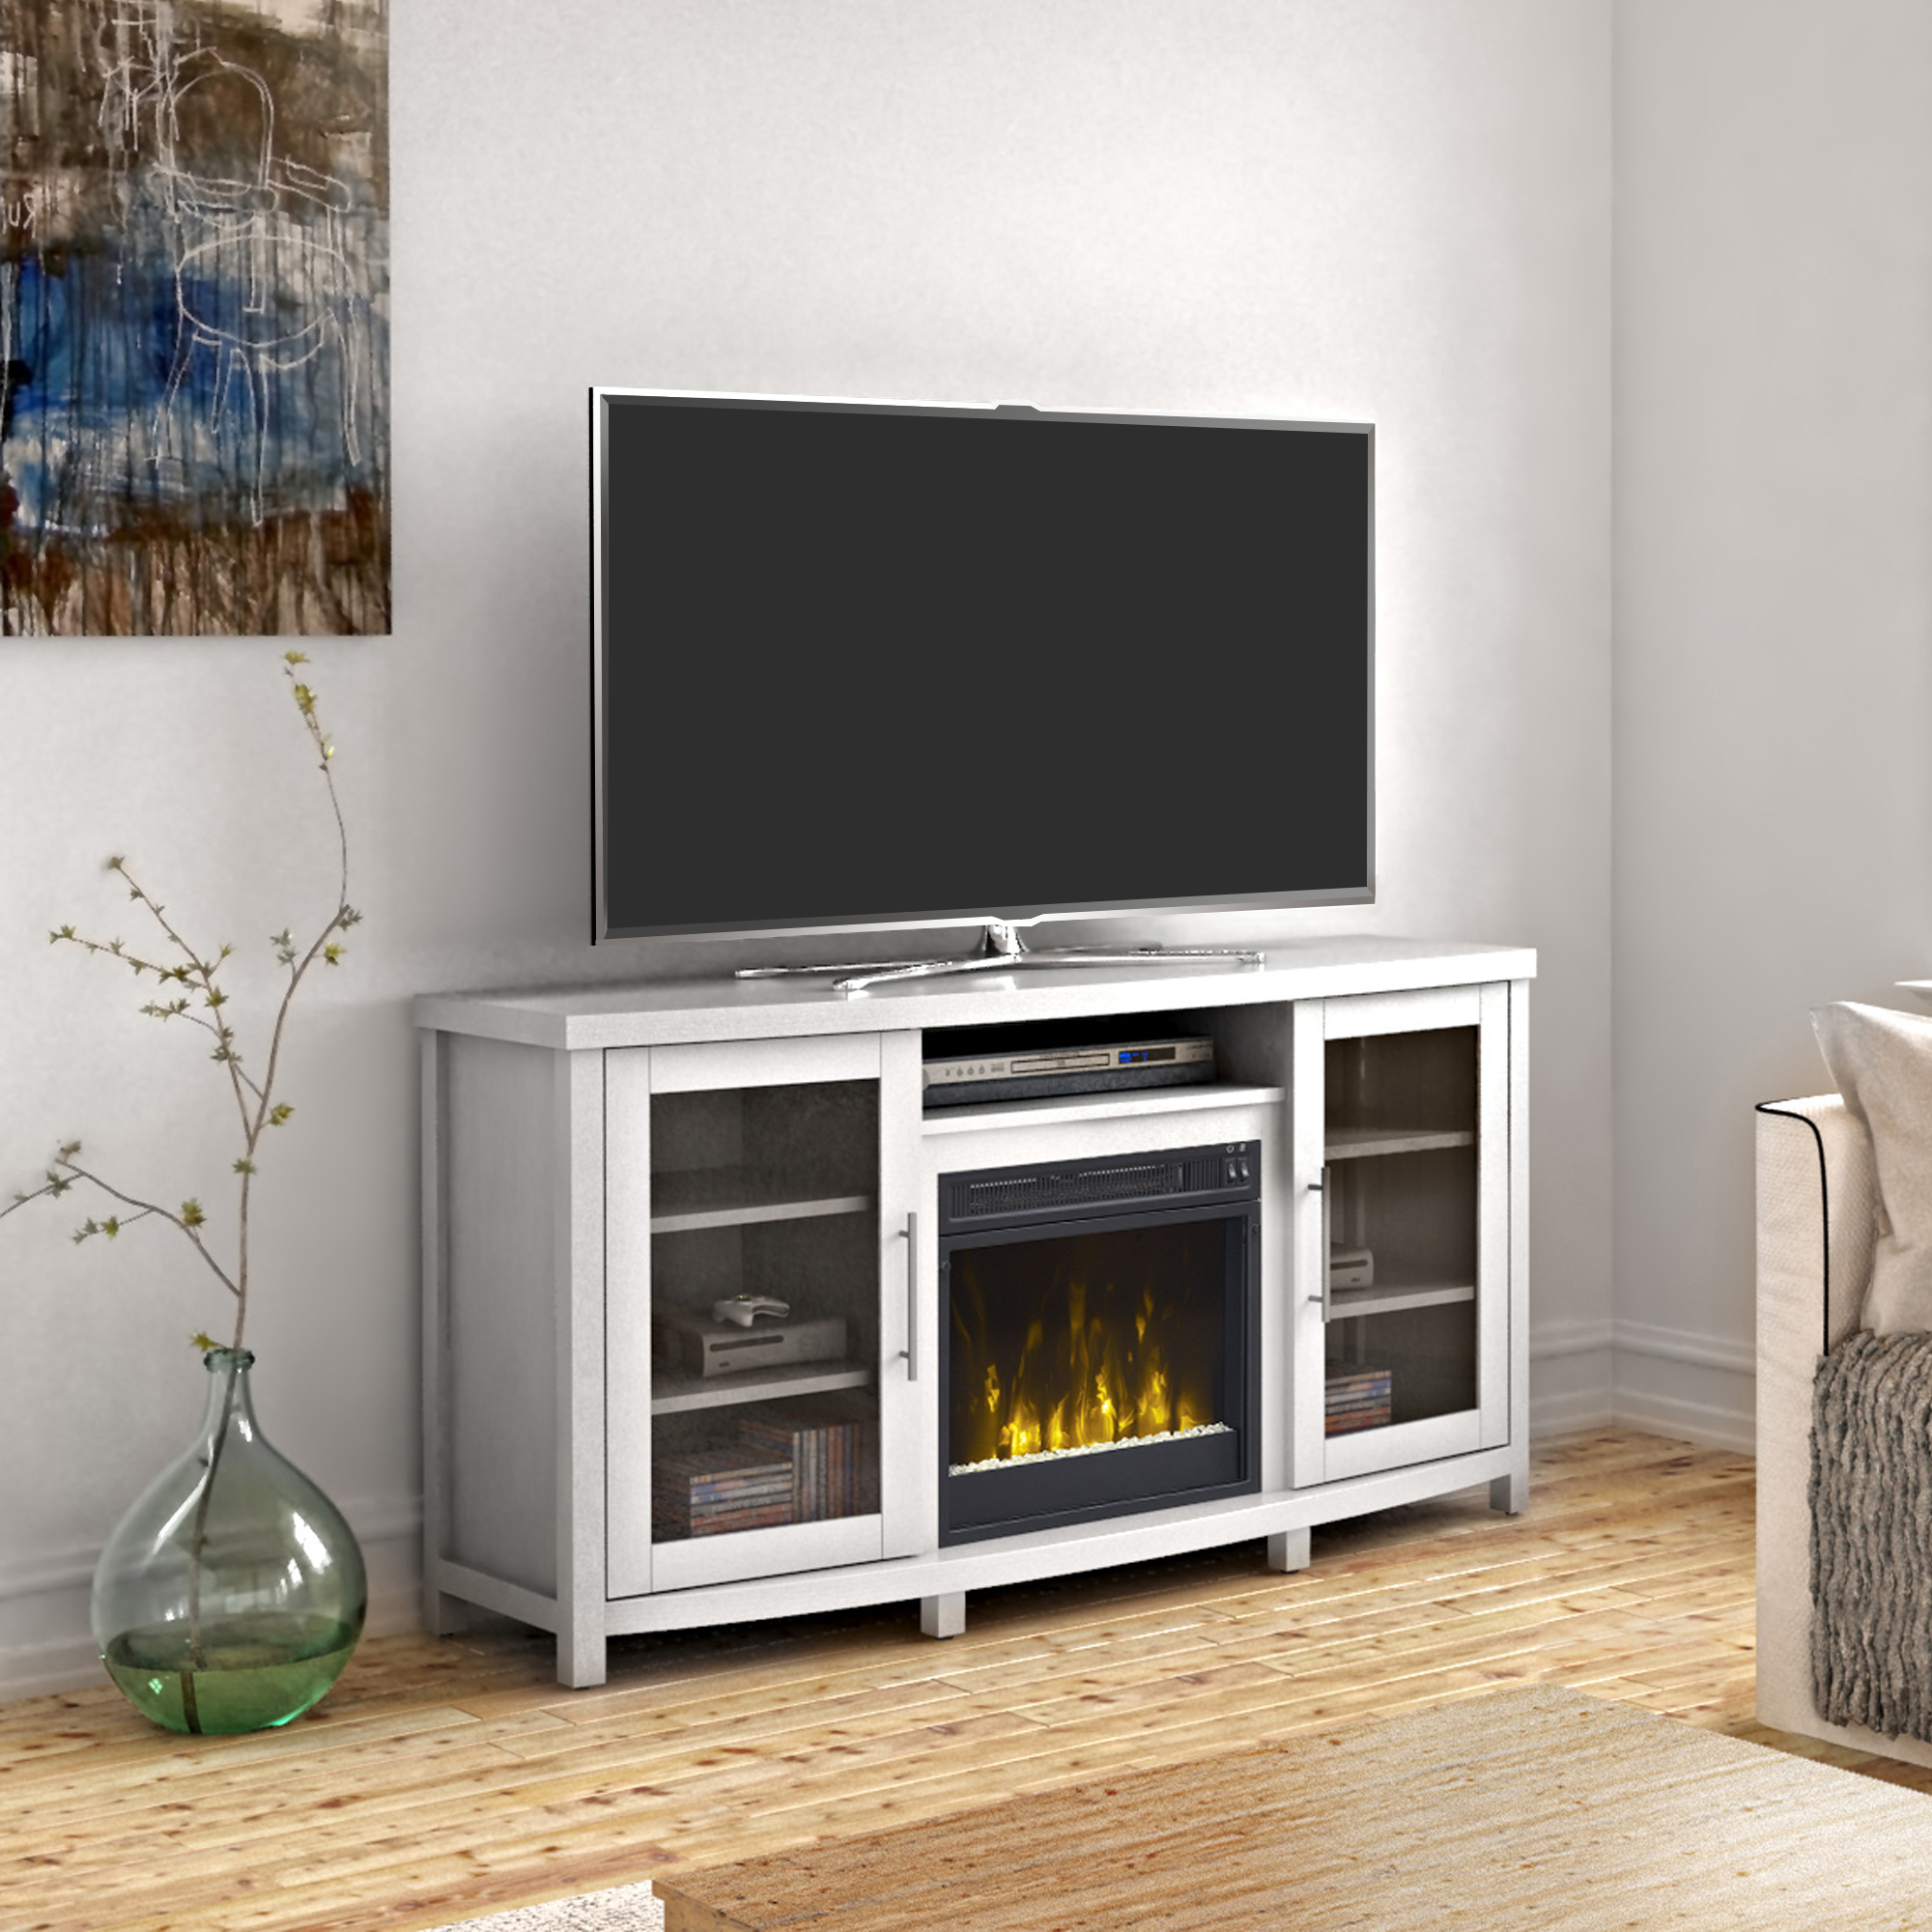 """Sea Meadow White Tv Stand For Tvs Up To 60"""" With Electric For Lorraine Tv Stands For Tvs Up To 60"""" (View 9 of 20)"""